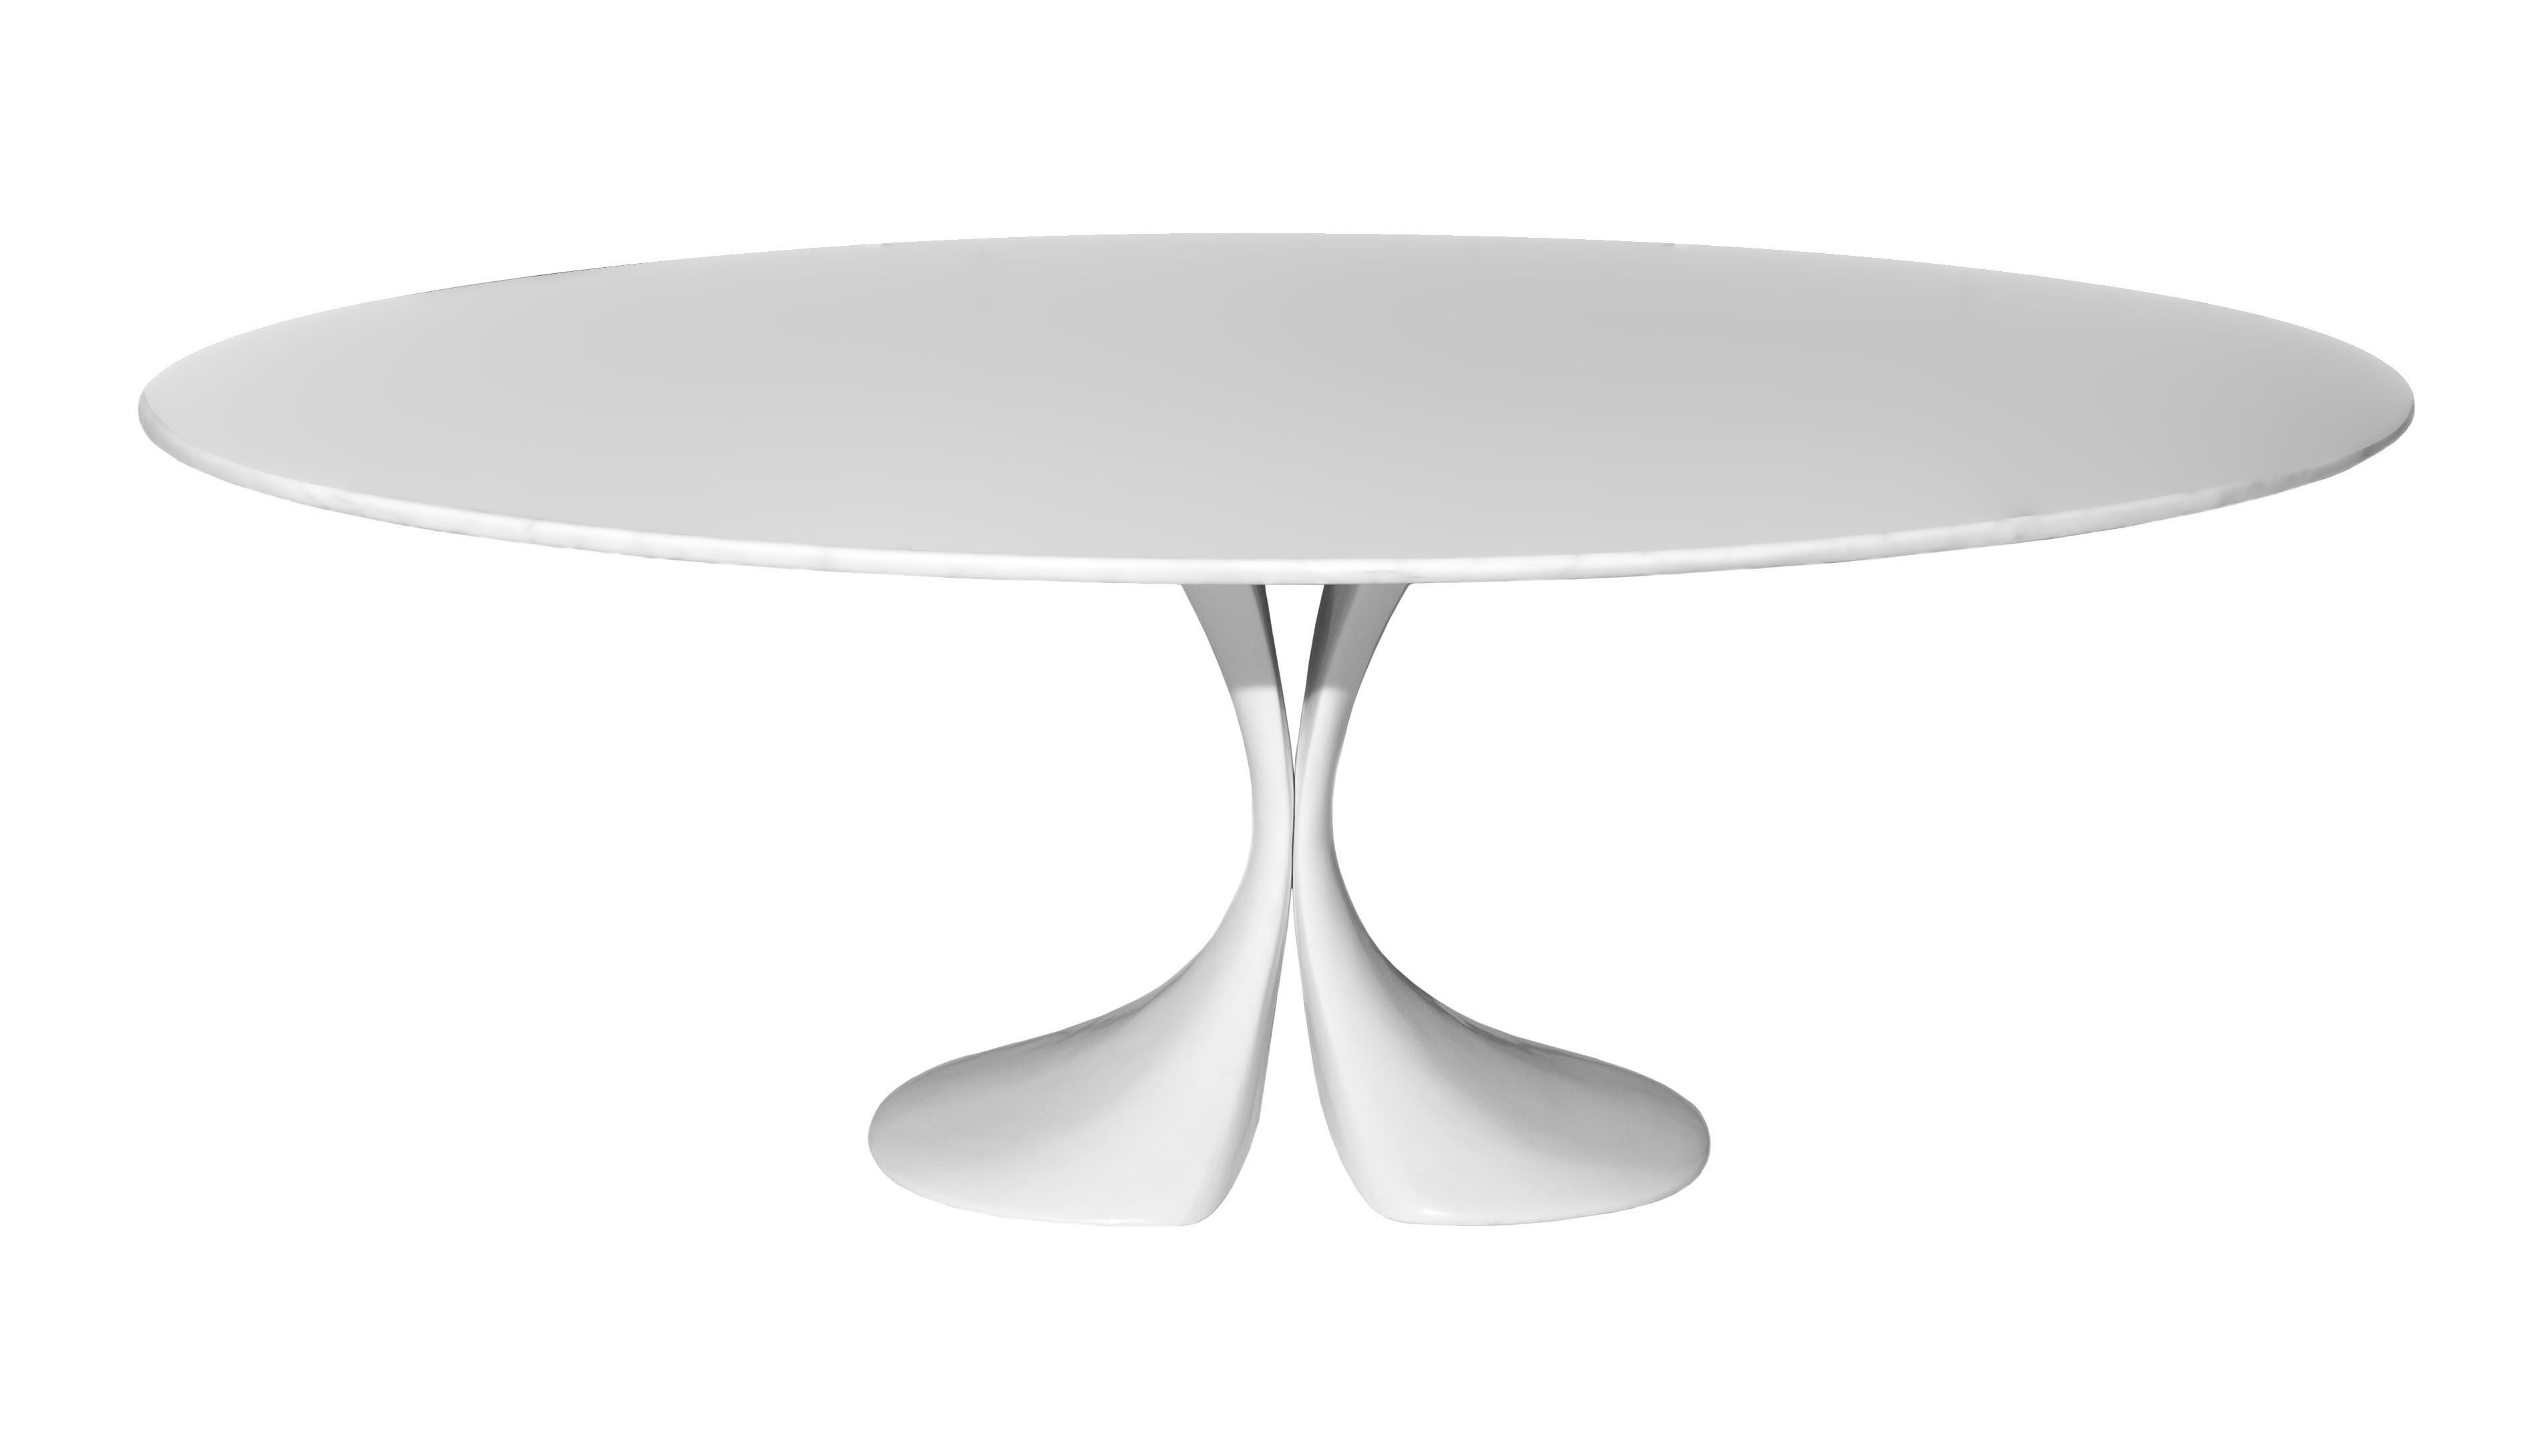 Furniture - Dining Tables - Didymos Oval table - 180 x 126 cm - Cristaplant top by Driade - White crystalplant top - Cristalplant